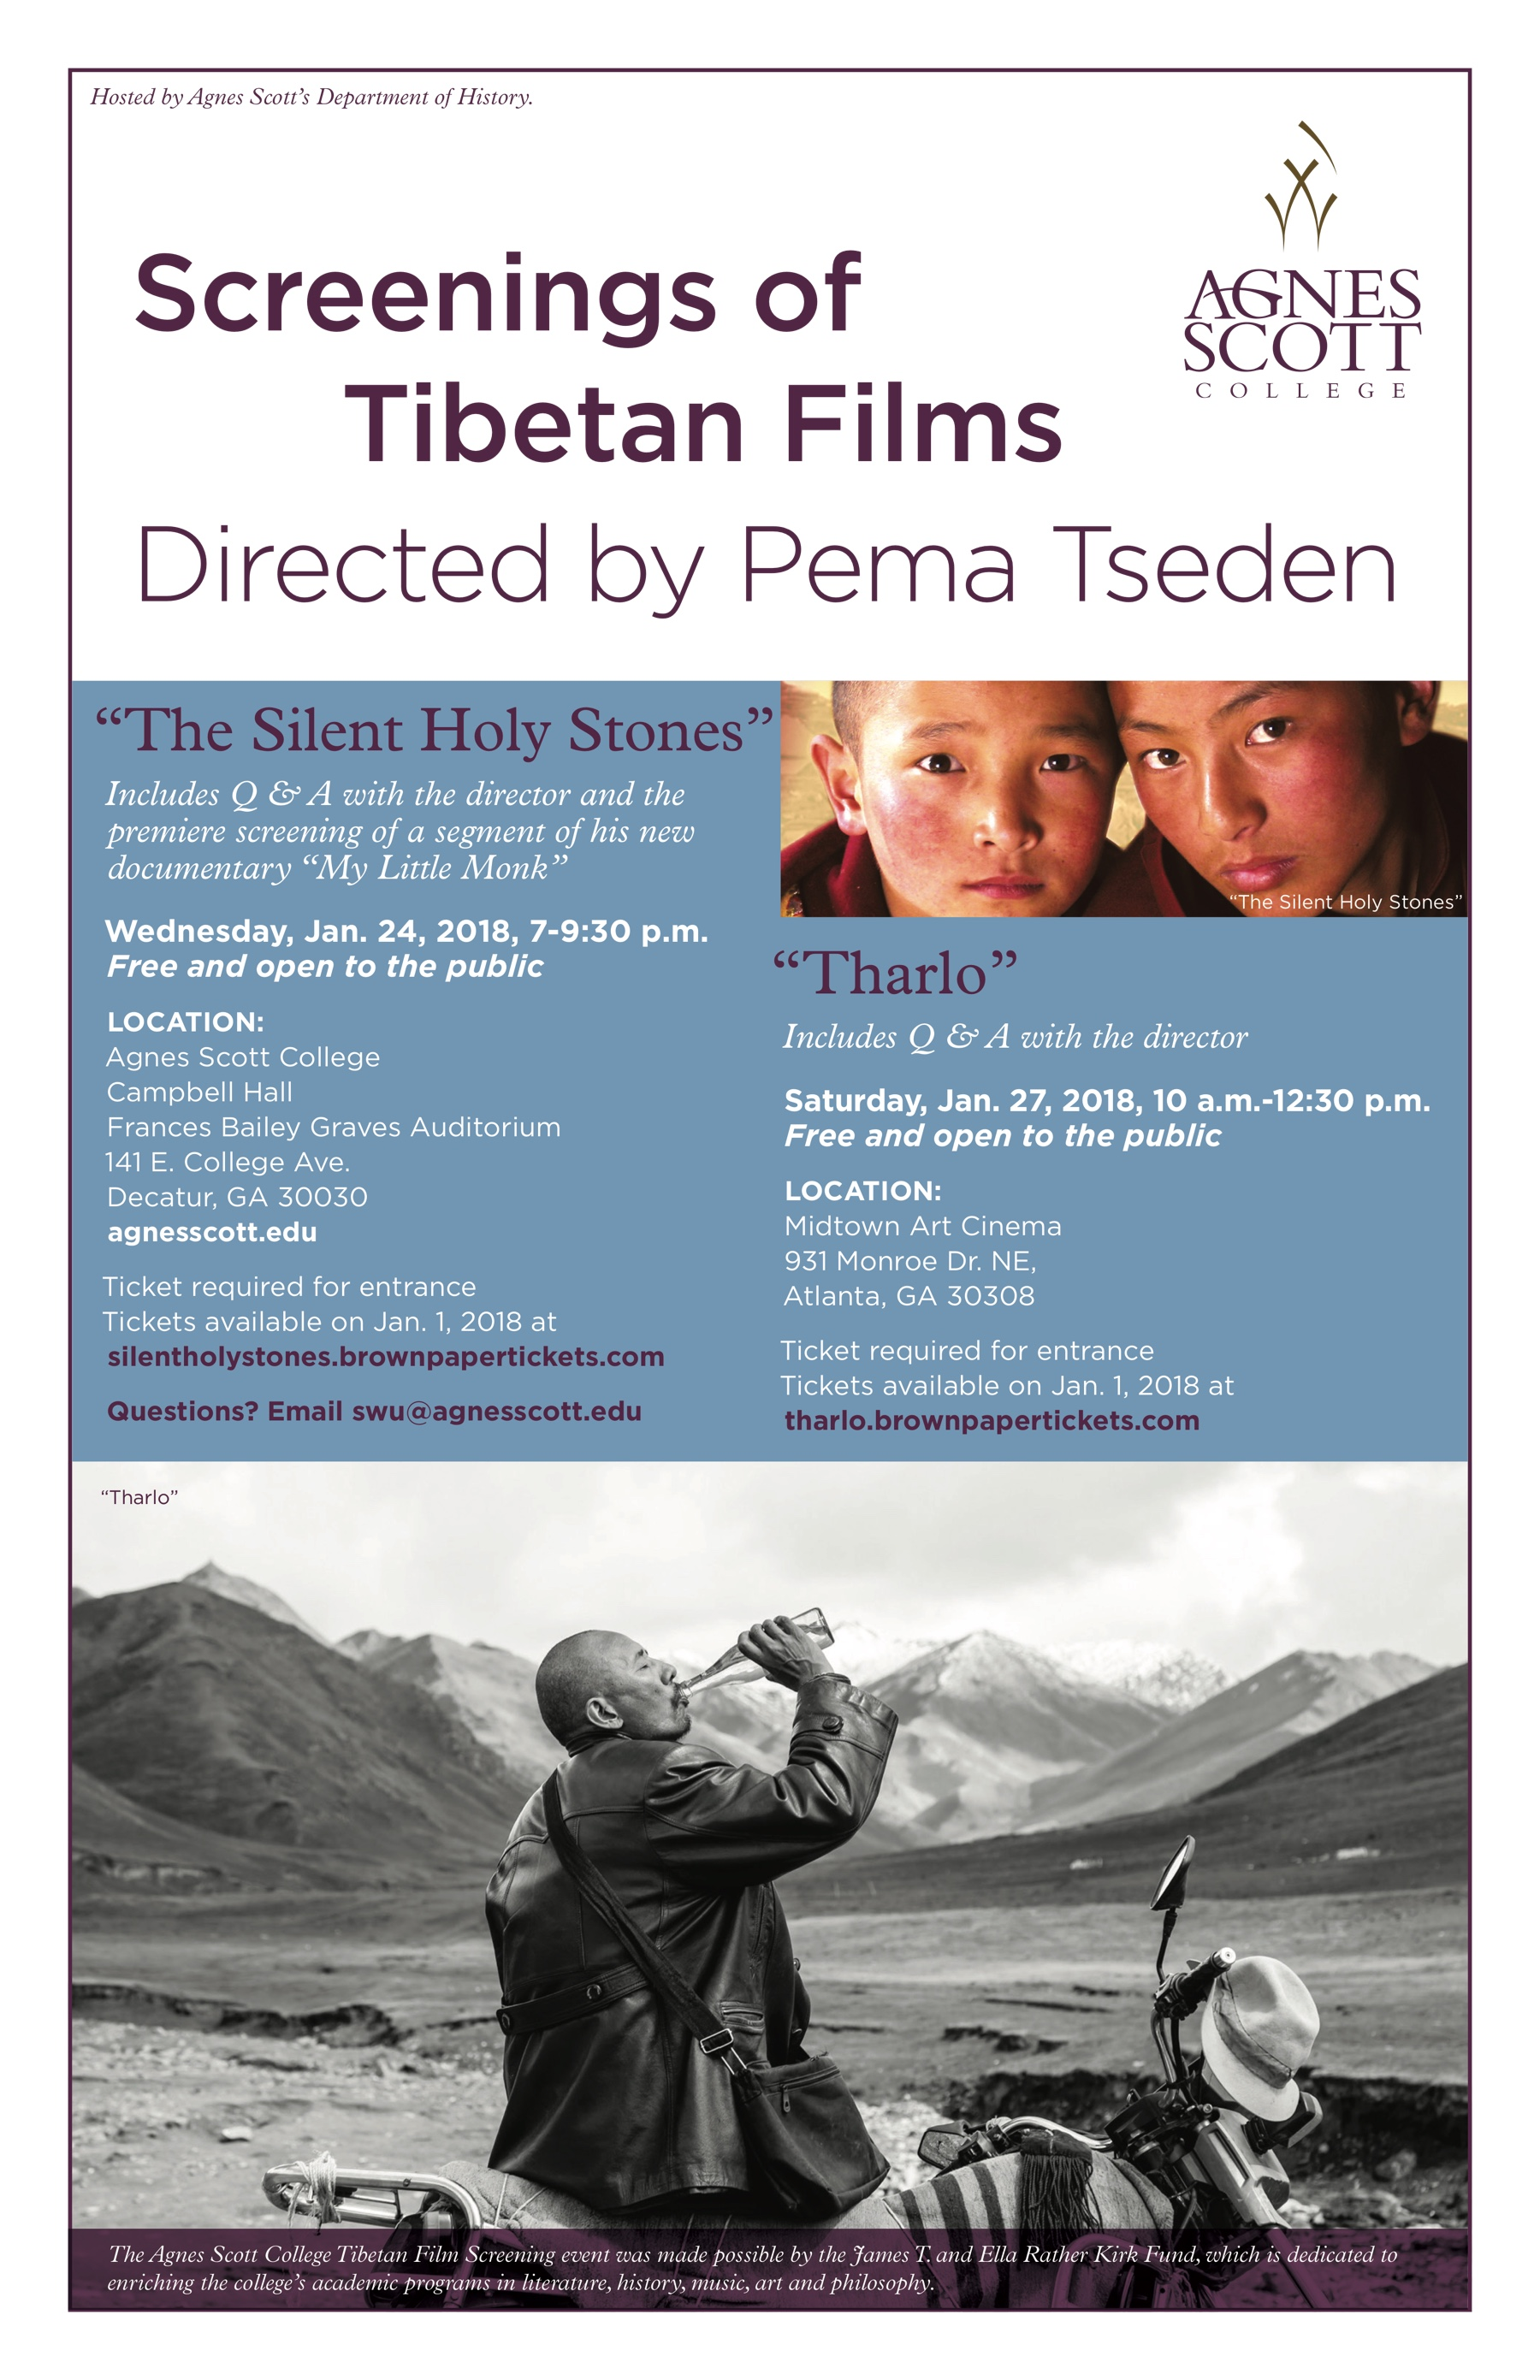 Screening Of Tibetan Films At Agnes Scott College